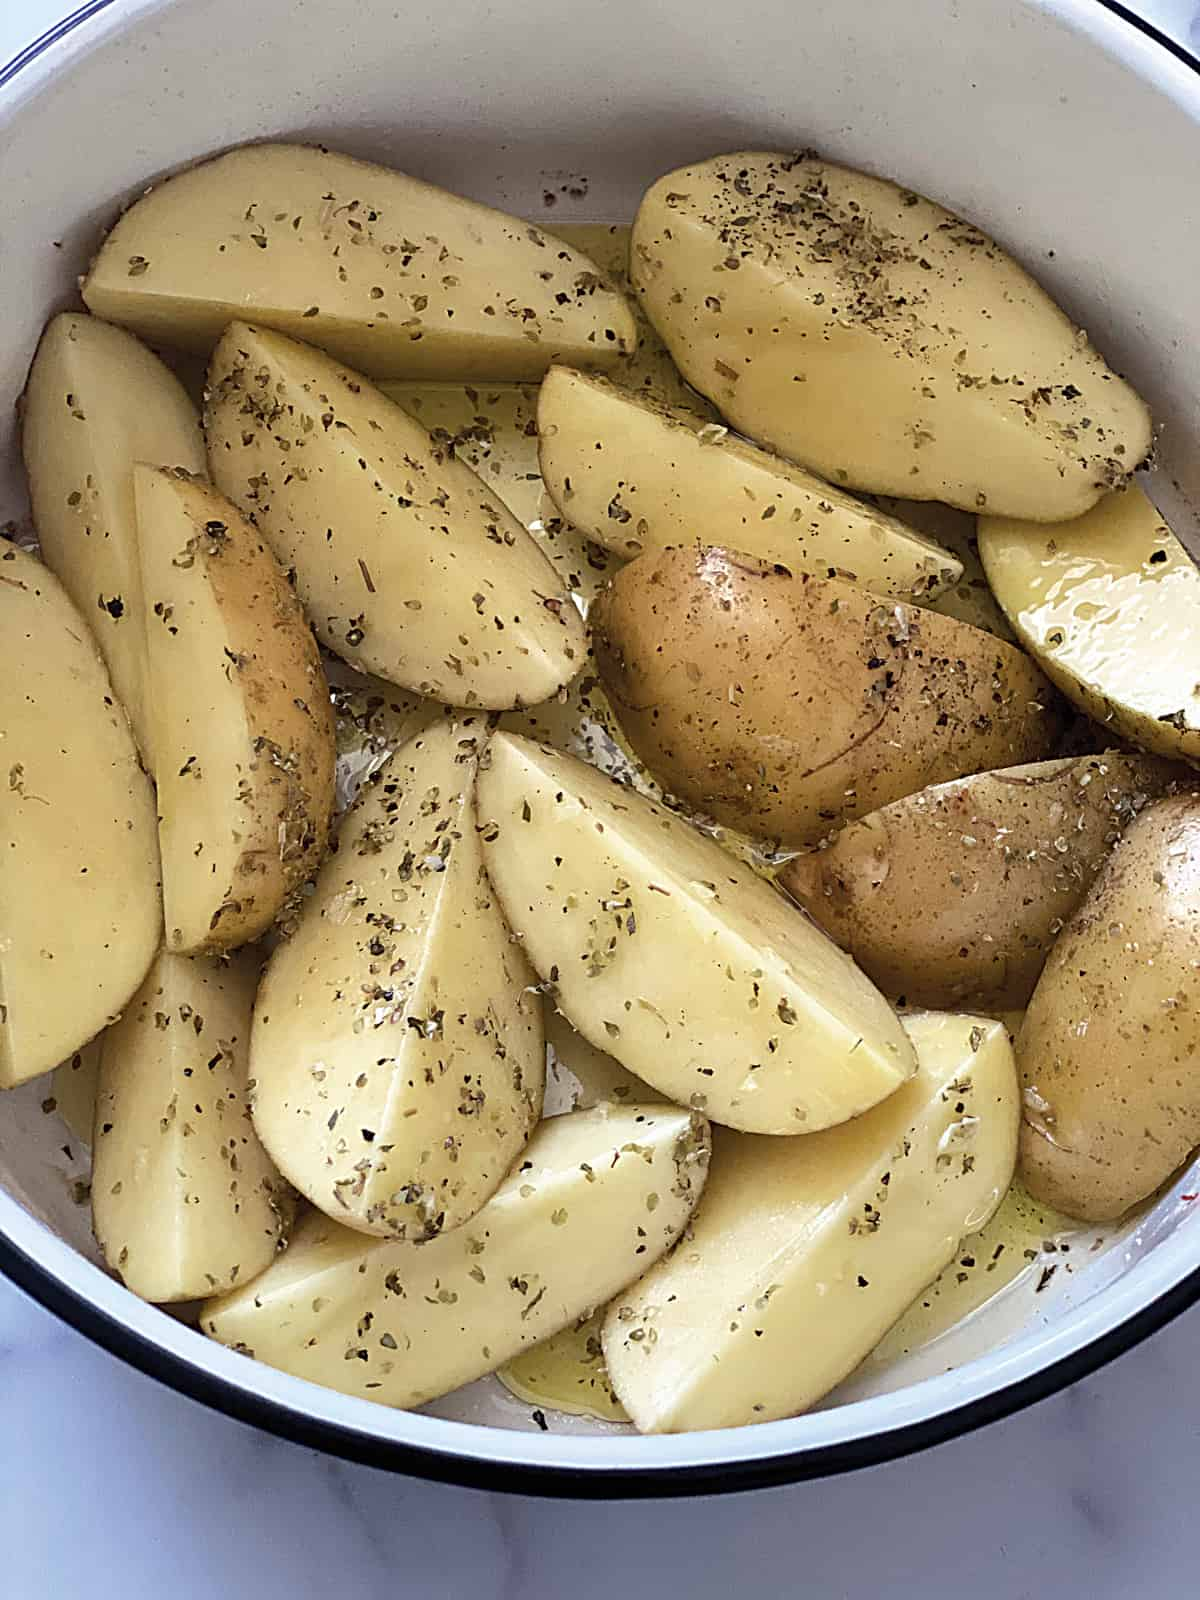 Potato wedges dressed in olive oil in a bowl.